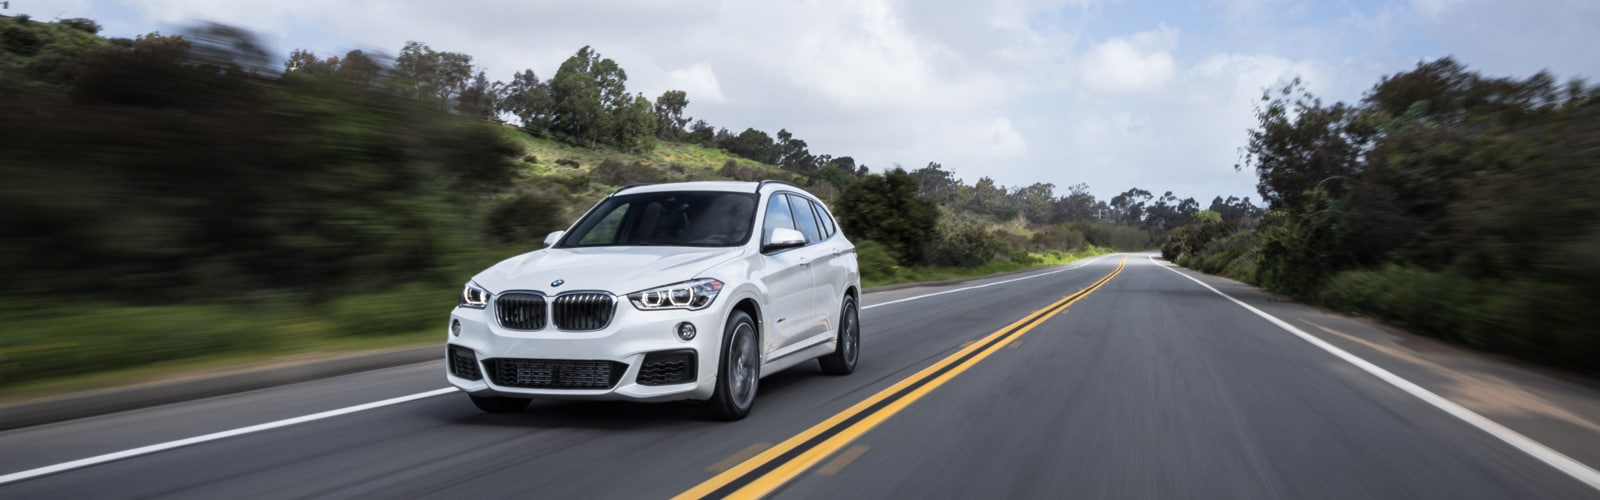 BMW X1 lease deals Image